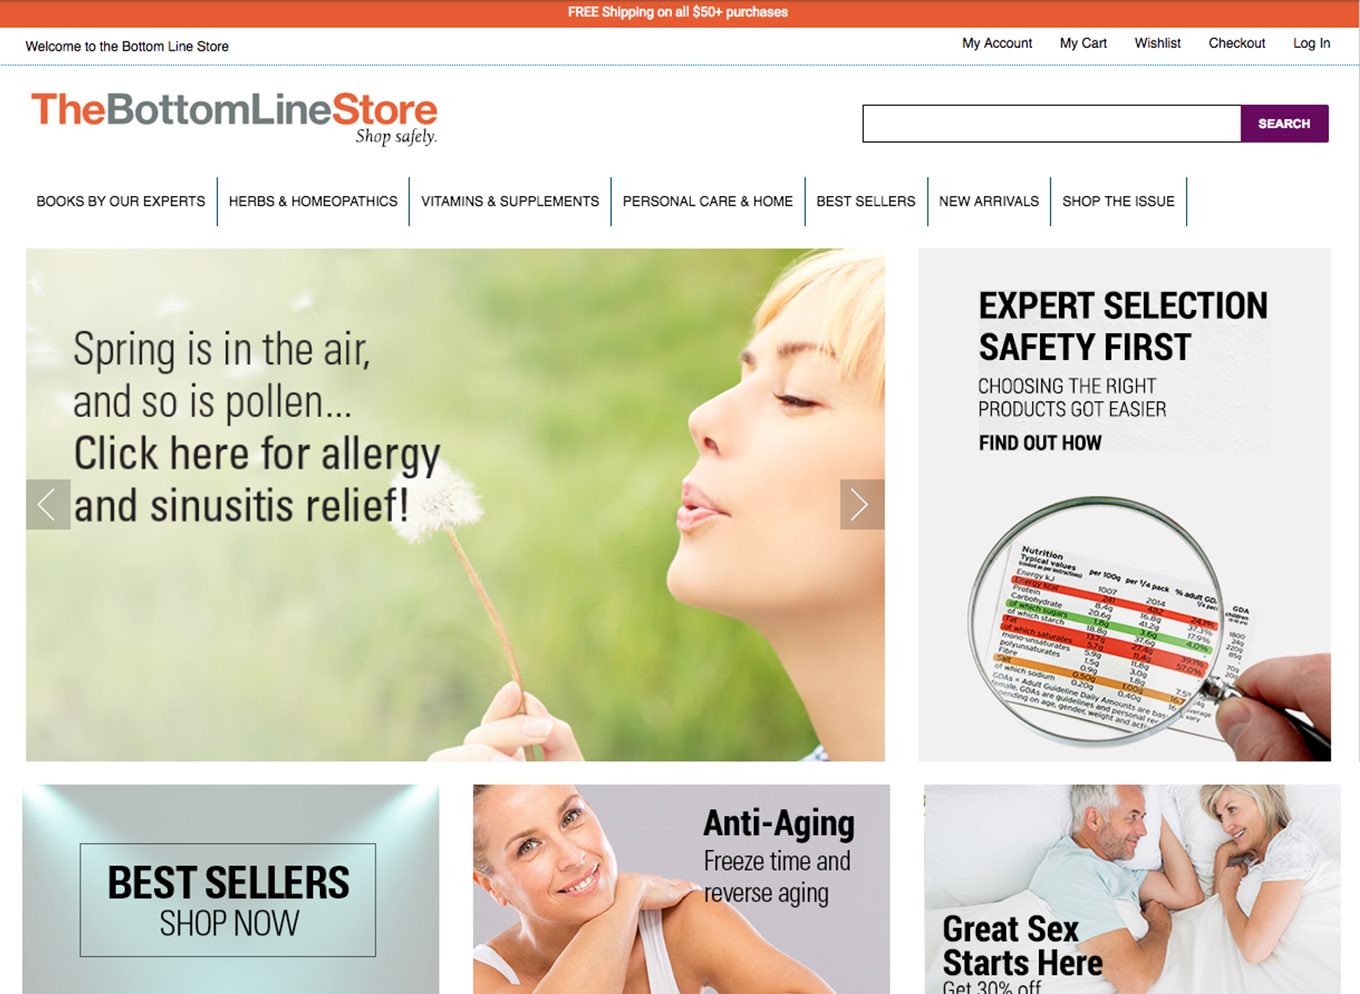 The Magento 1 version of the bottomlinestore homepage